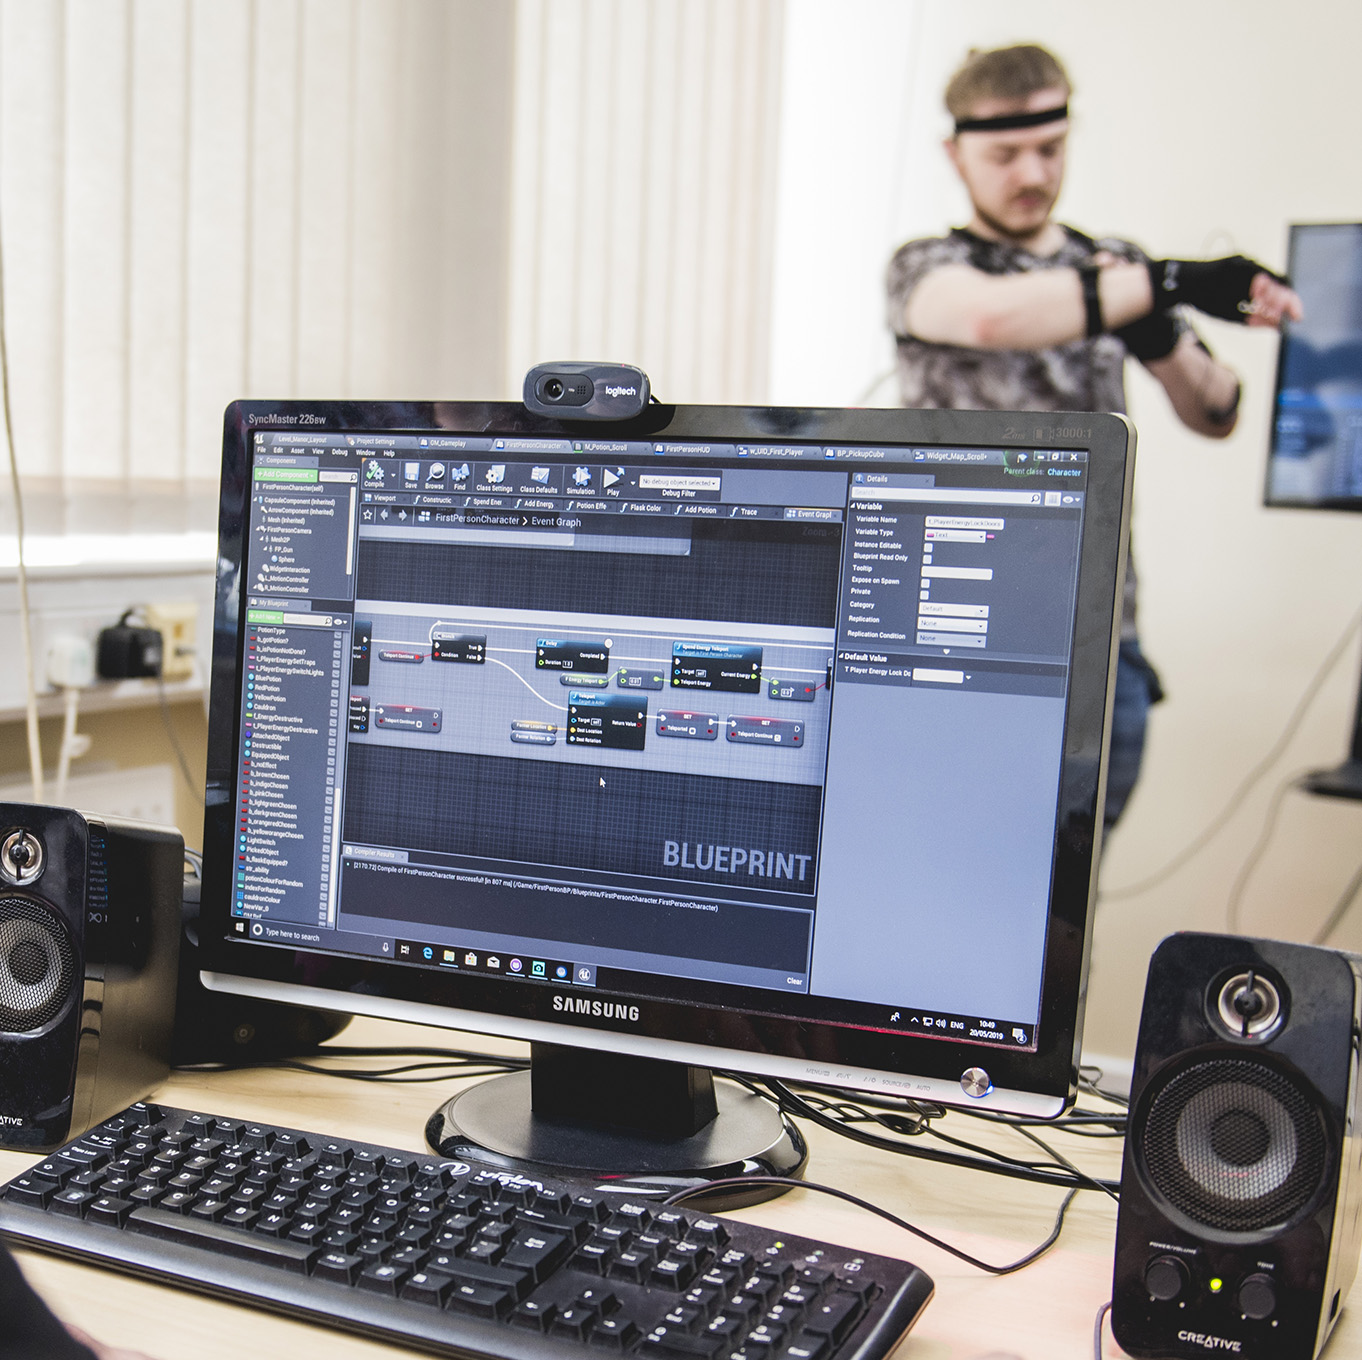 A computer monitor shows a project that a student is working on. In the backgroun, a student is wearing motion capture equipment.